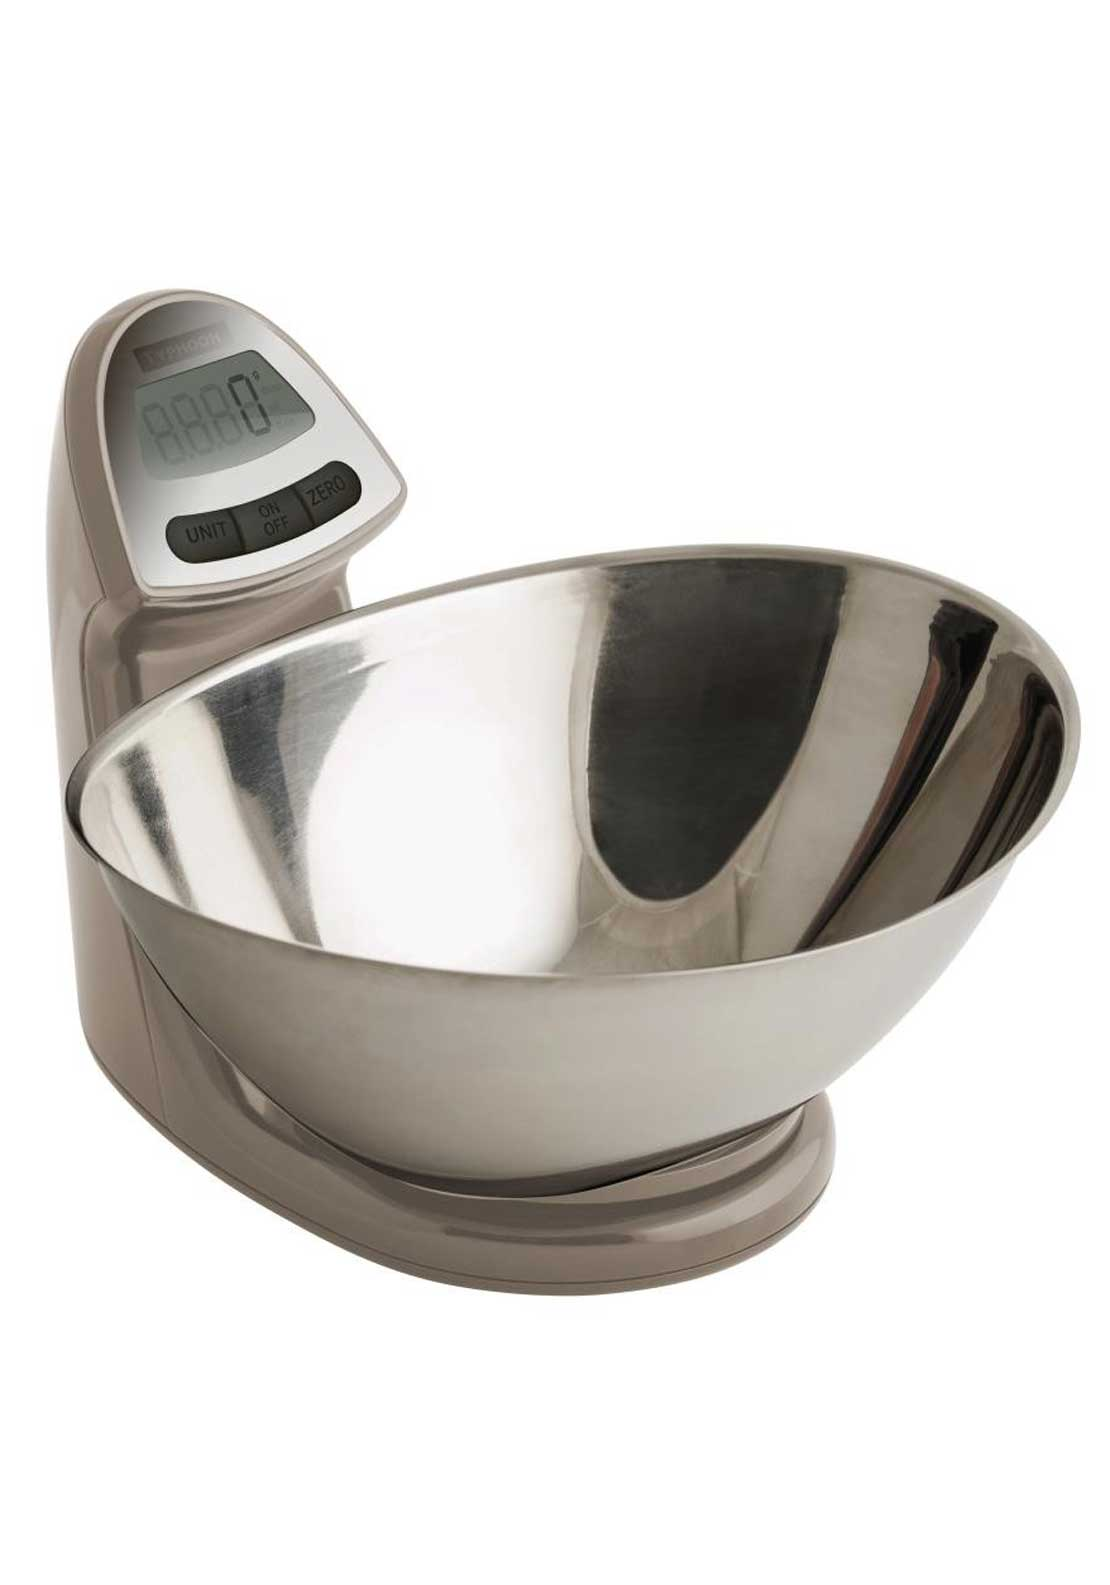 Typhoon 5kg Vision Electronic Kitchen Scales, Clay